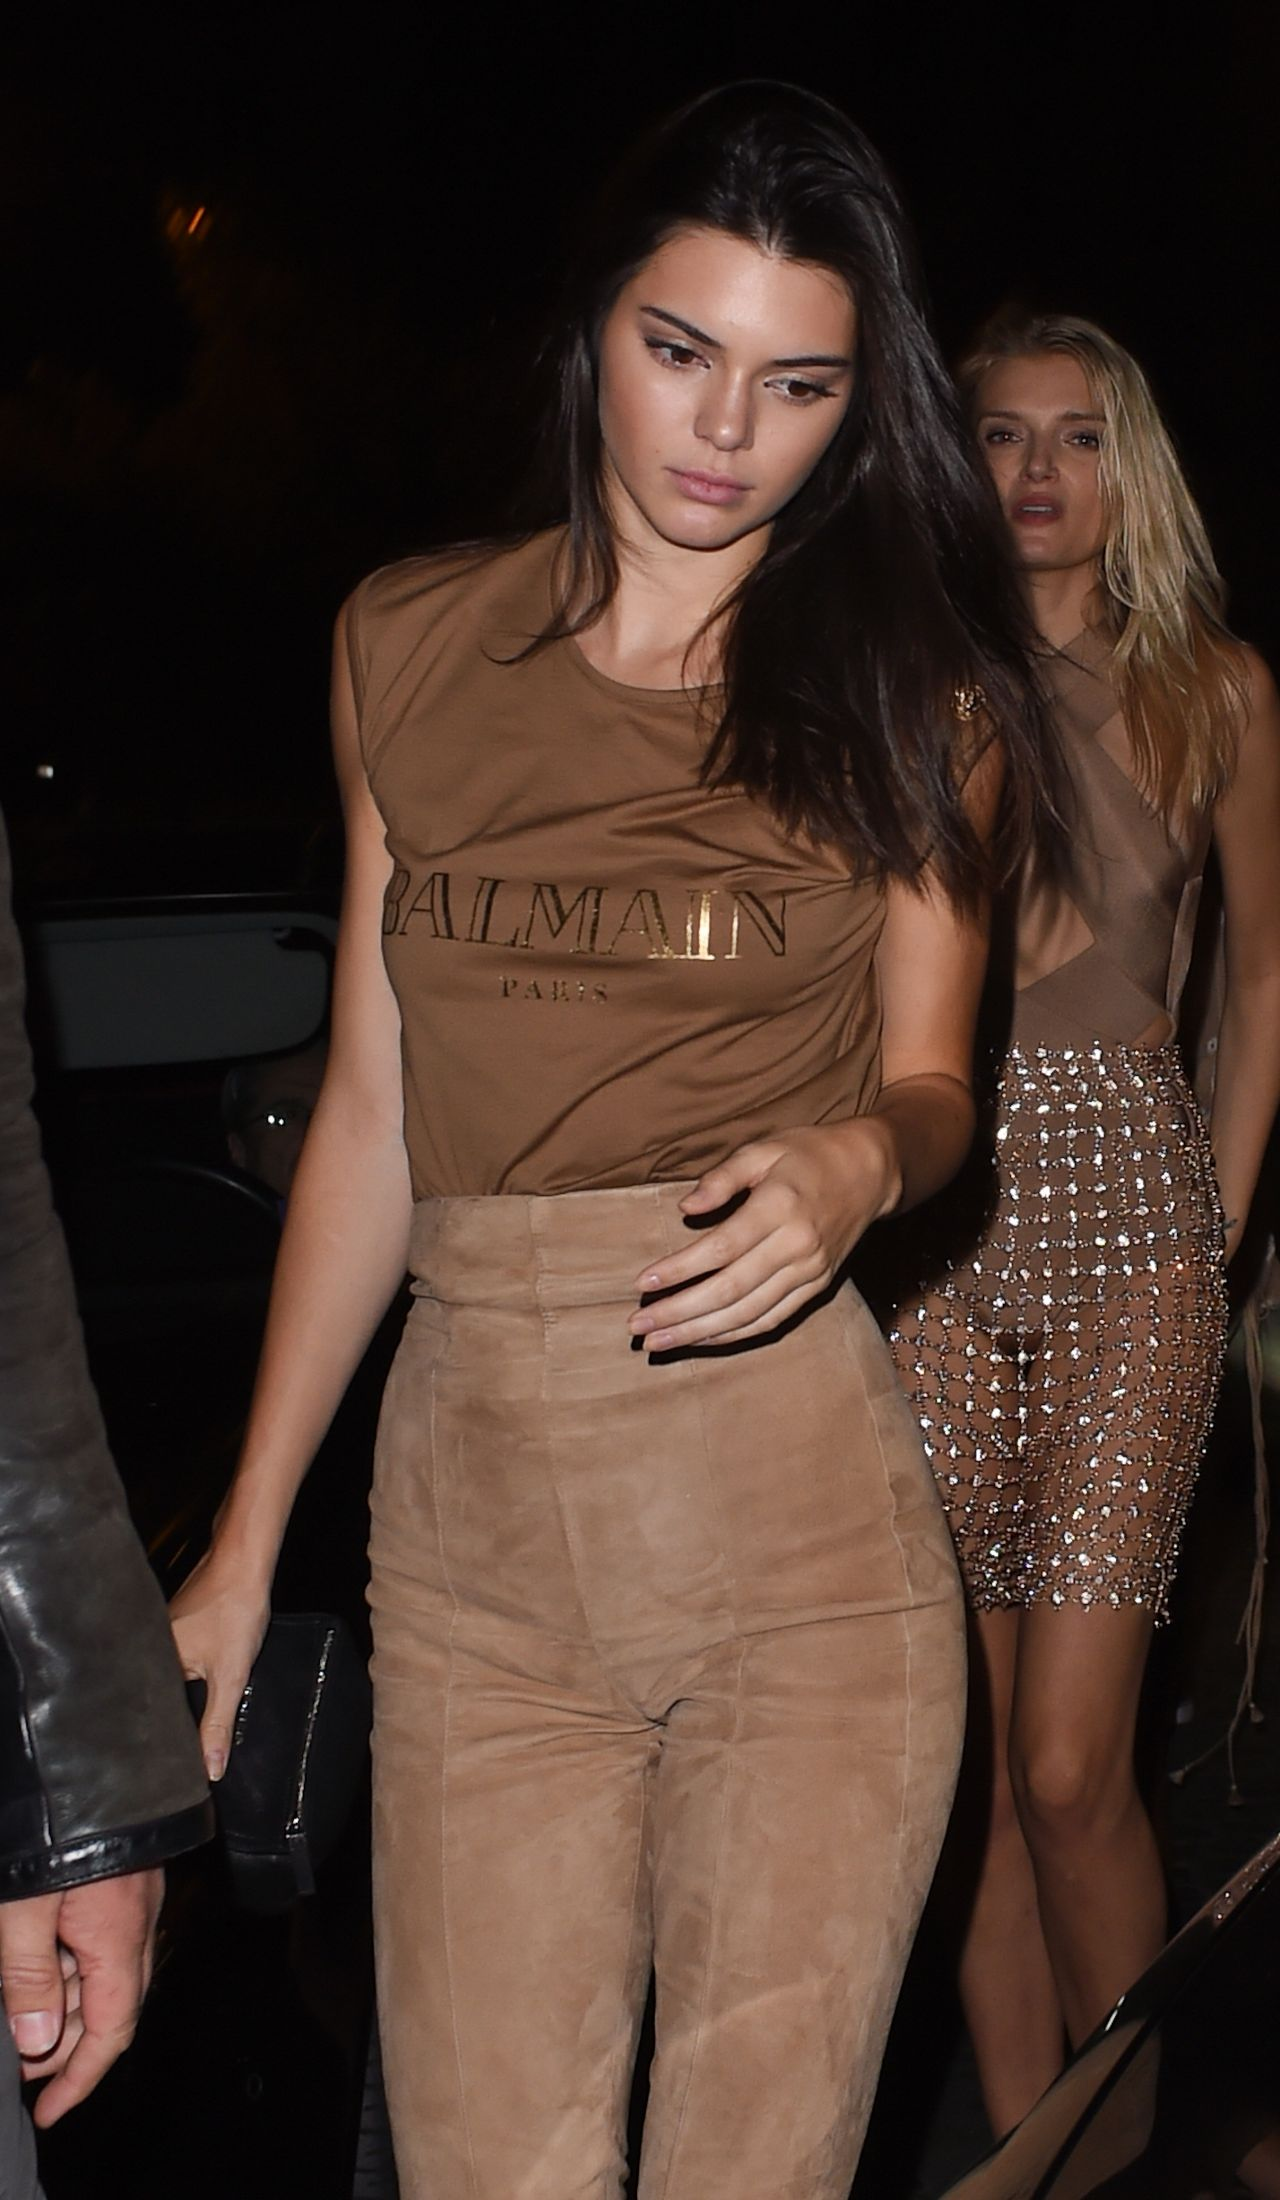 kendall-jenner-night-out-style-at-le-six-seven-in-paris-october-2015_1